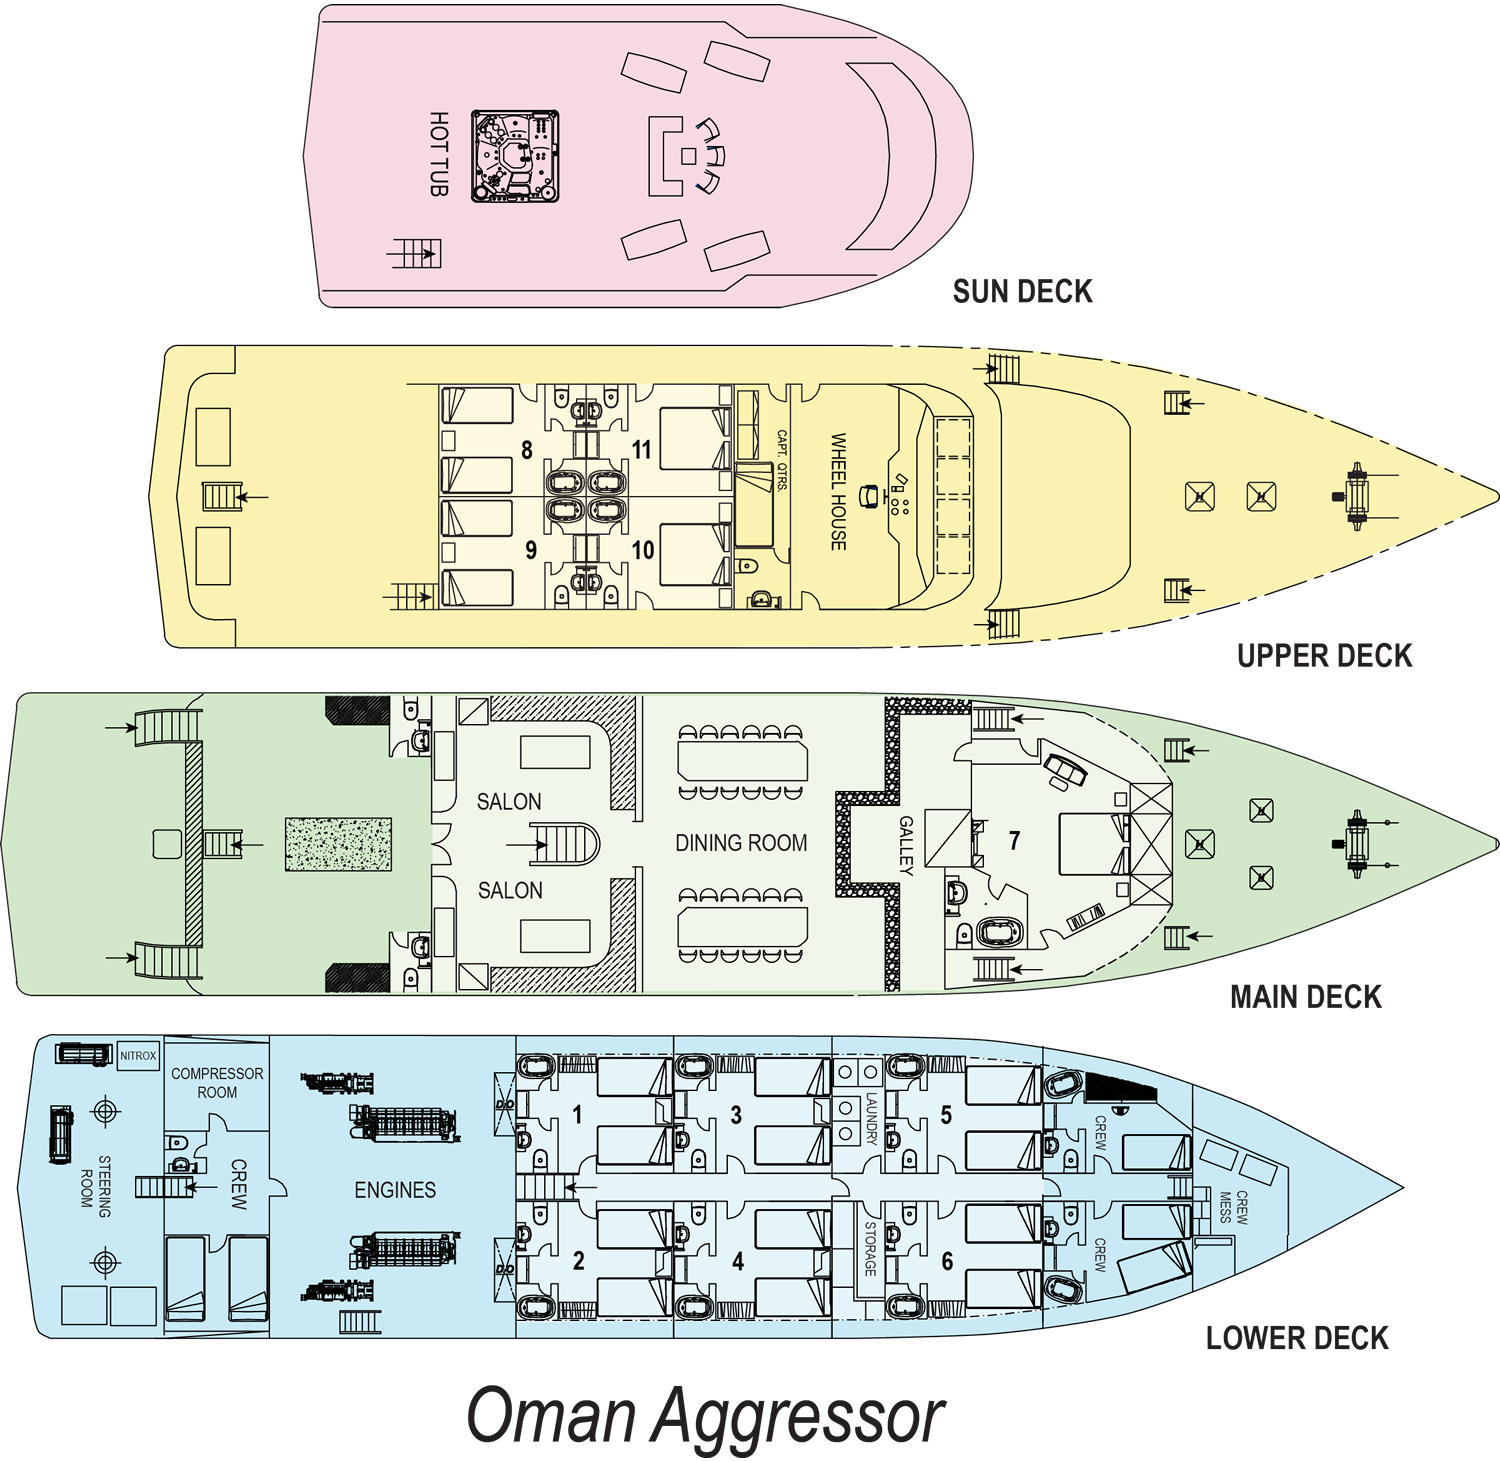 Aggressor fleet oman